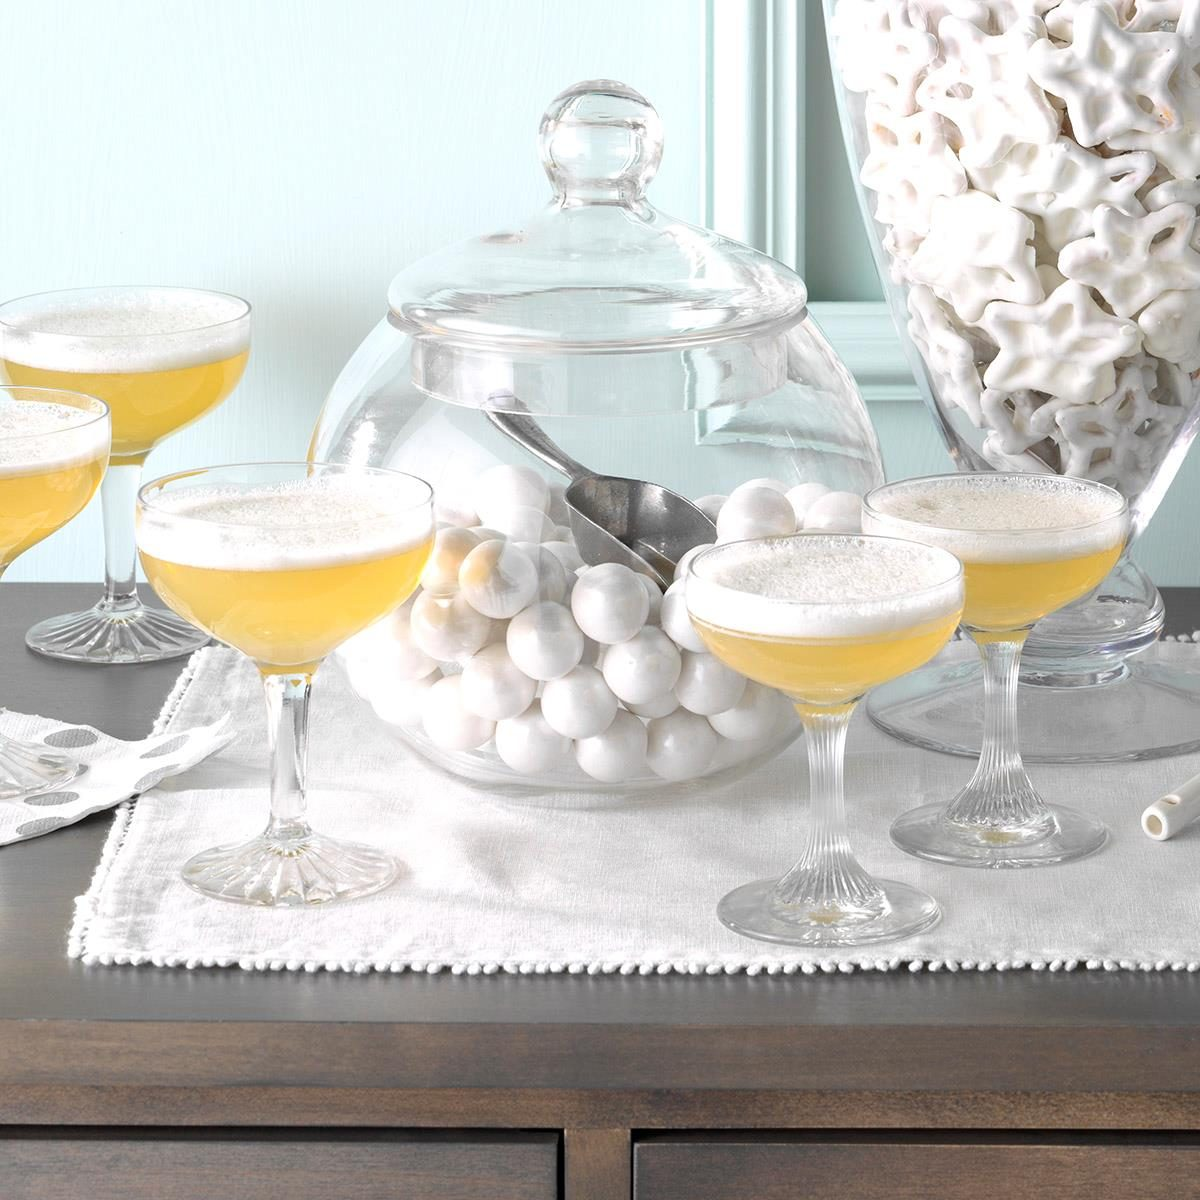 20 Sparkling Desserts for a Fabulous New Year's Eve ...